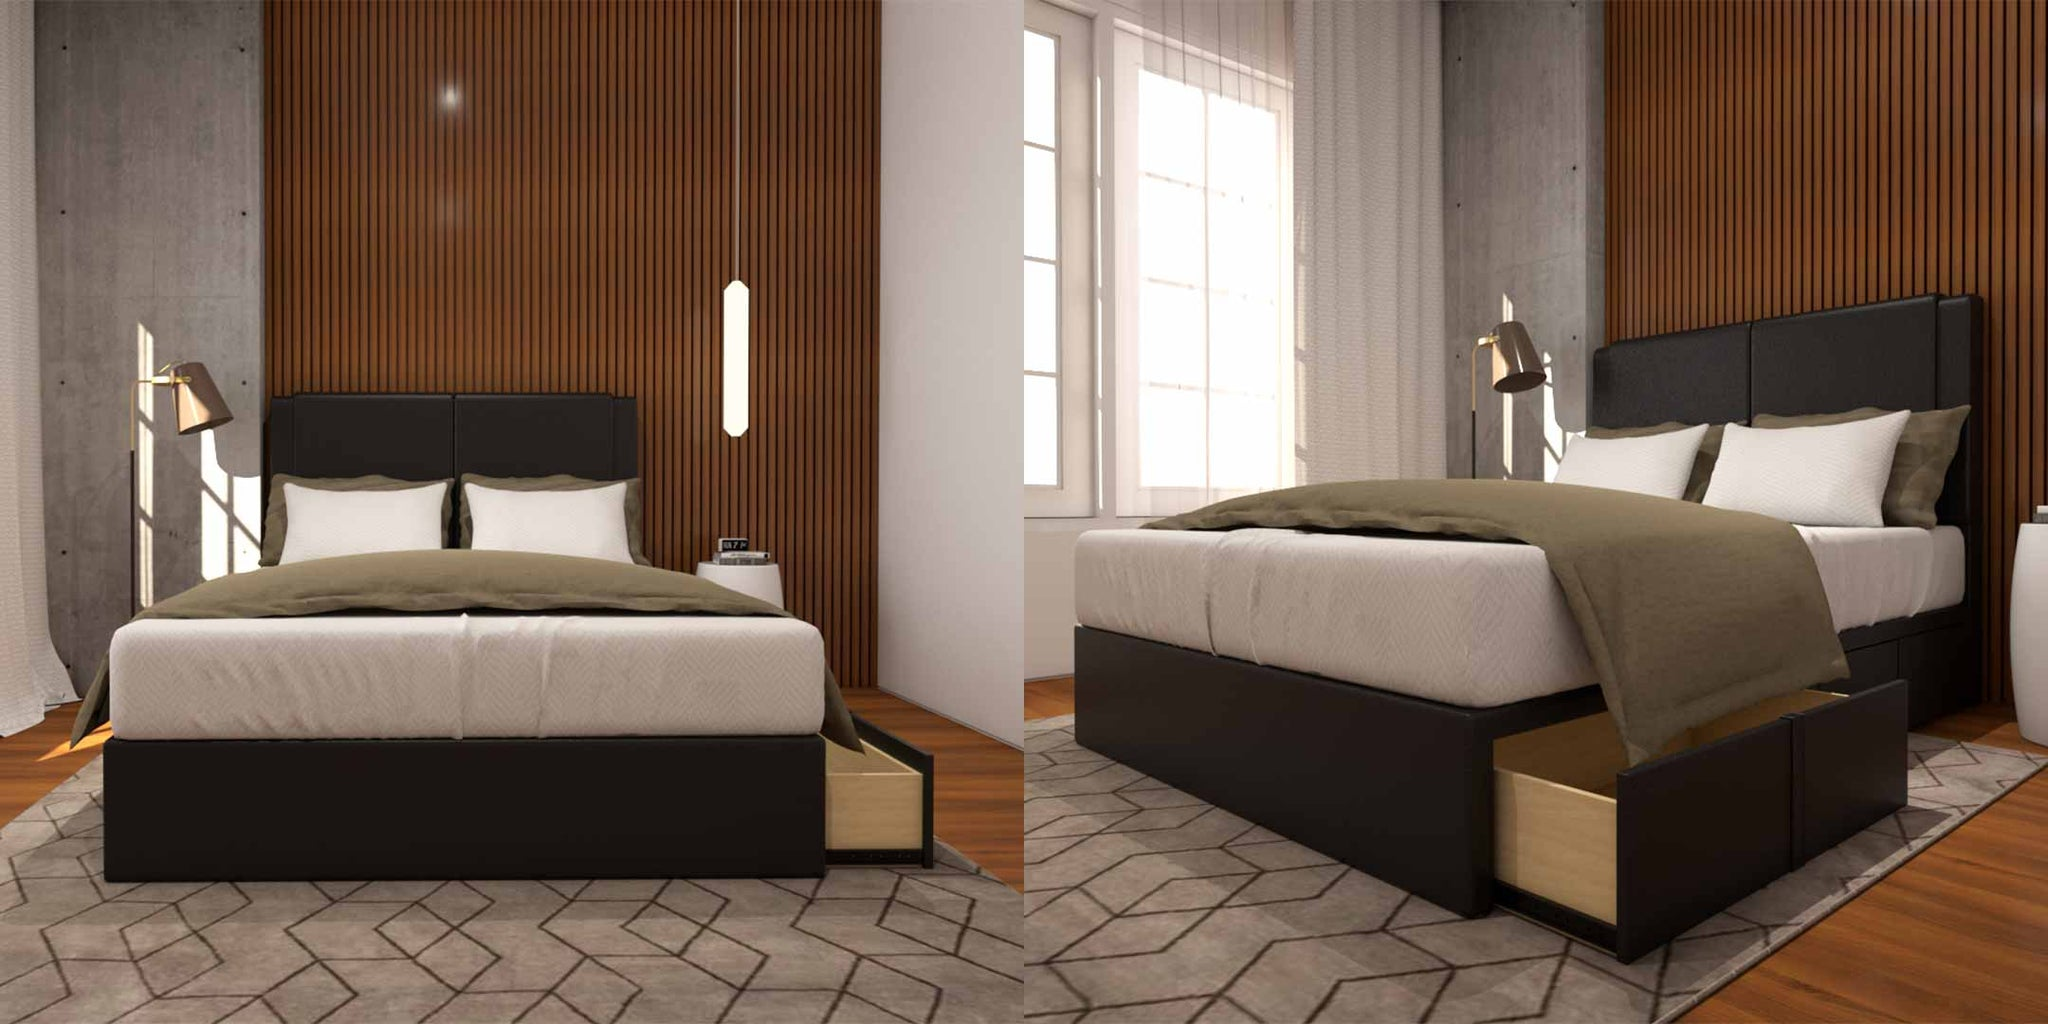 Organize your bedroom with Ashleah Faux Leather Drawer Bedframe